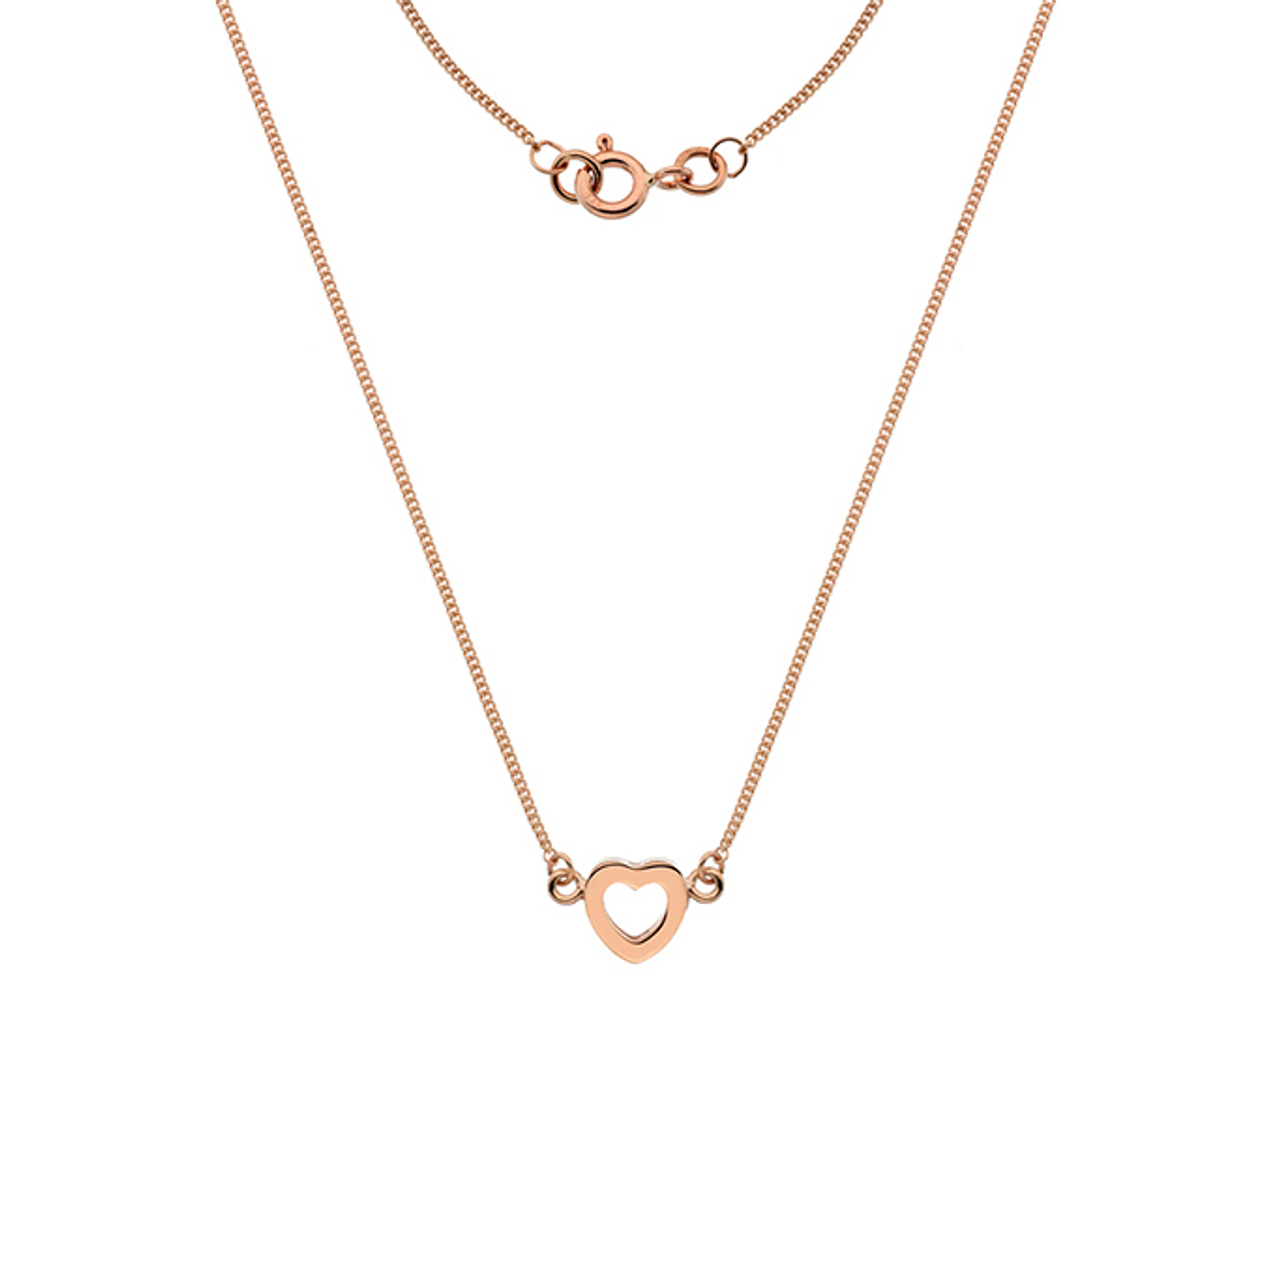 9ct Rose Gold Heart shaped Pendant on Chain.